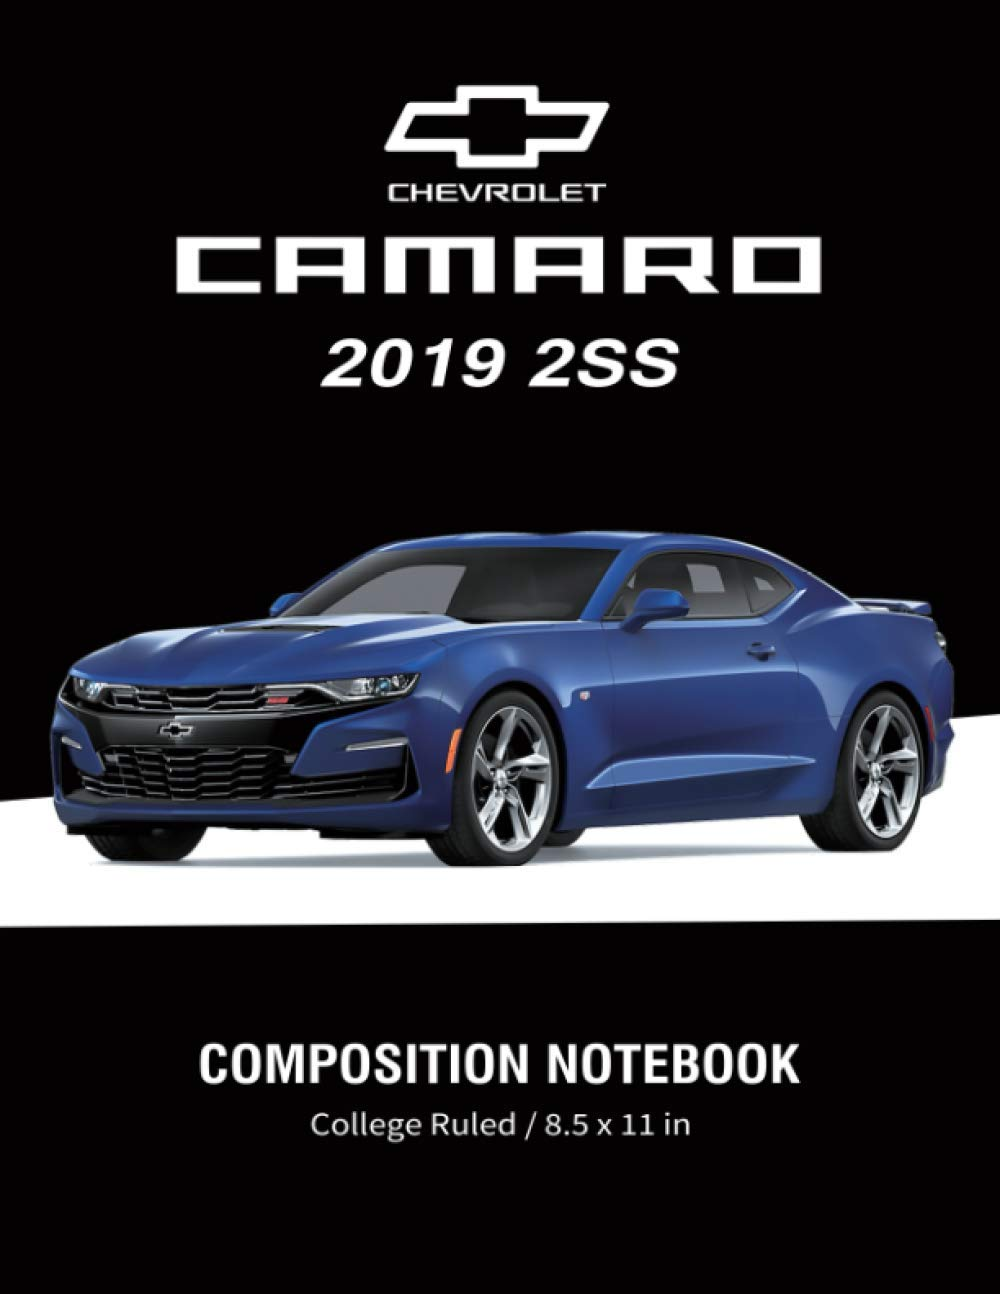 Chevrolet Camaro 2019 2ss Composition Notebook College Ruled 8 5 X 11 In American Muscle Cars Supercars Notebook Lined Composition Book Diary Journal Notebook Amazon De Supercar Sam Fremdsprachige Bücher